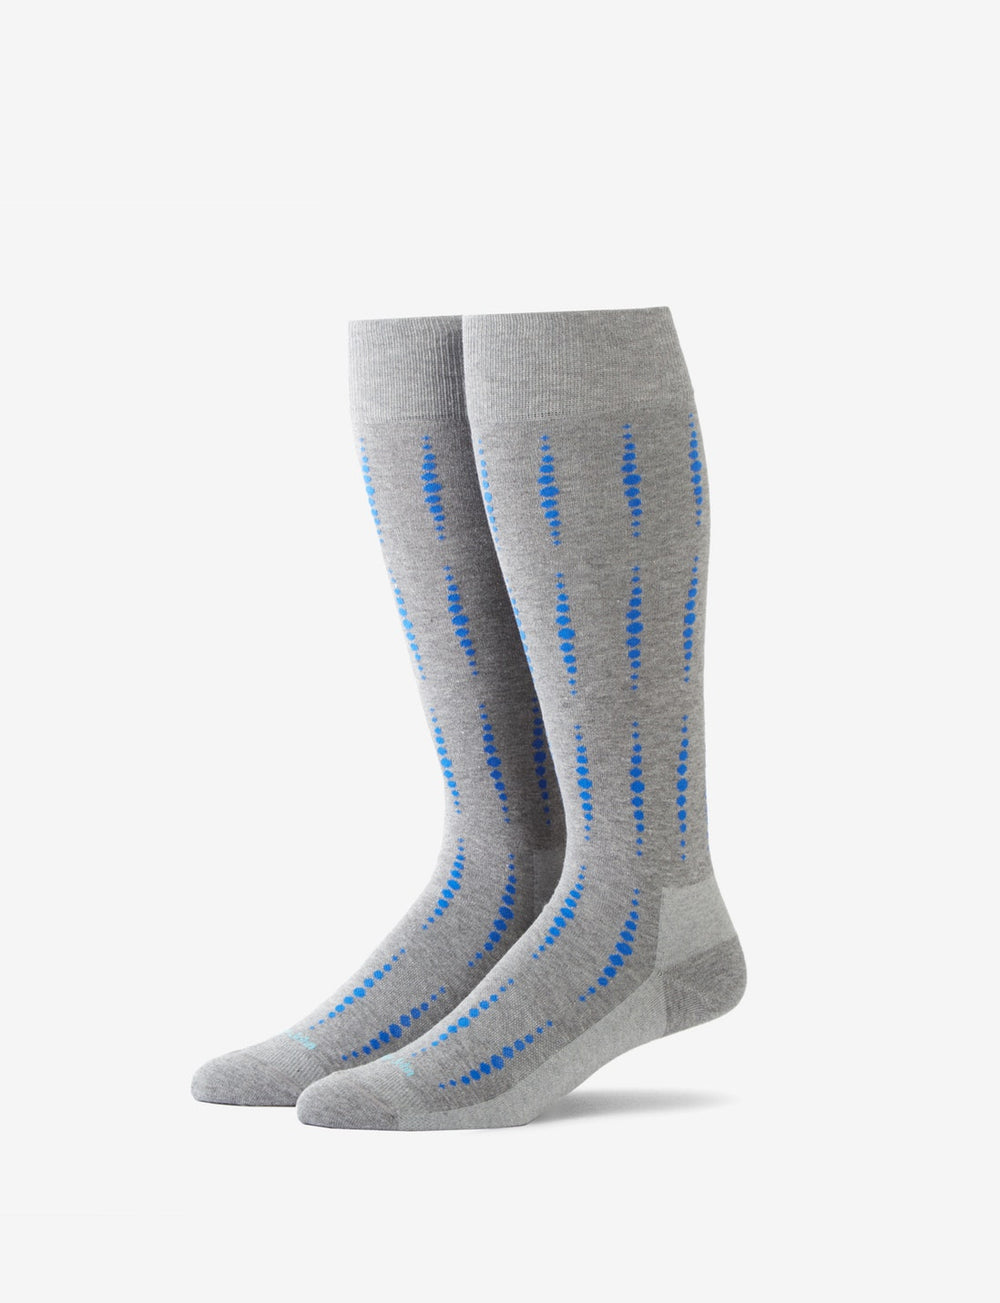 Dotted Pinstripe Stay-Up Dress Sock Details Image